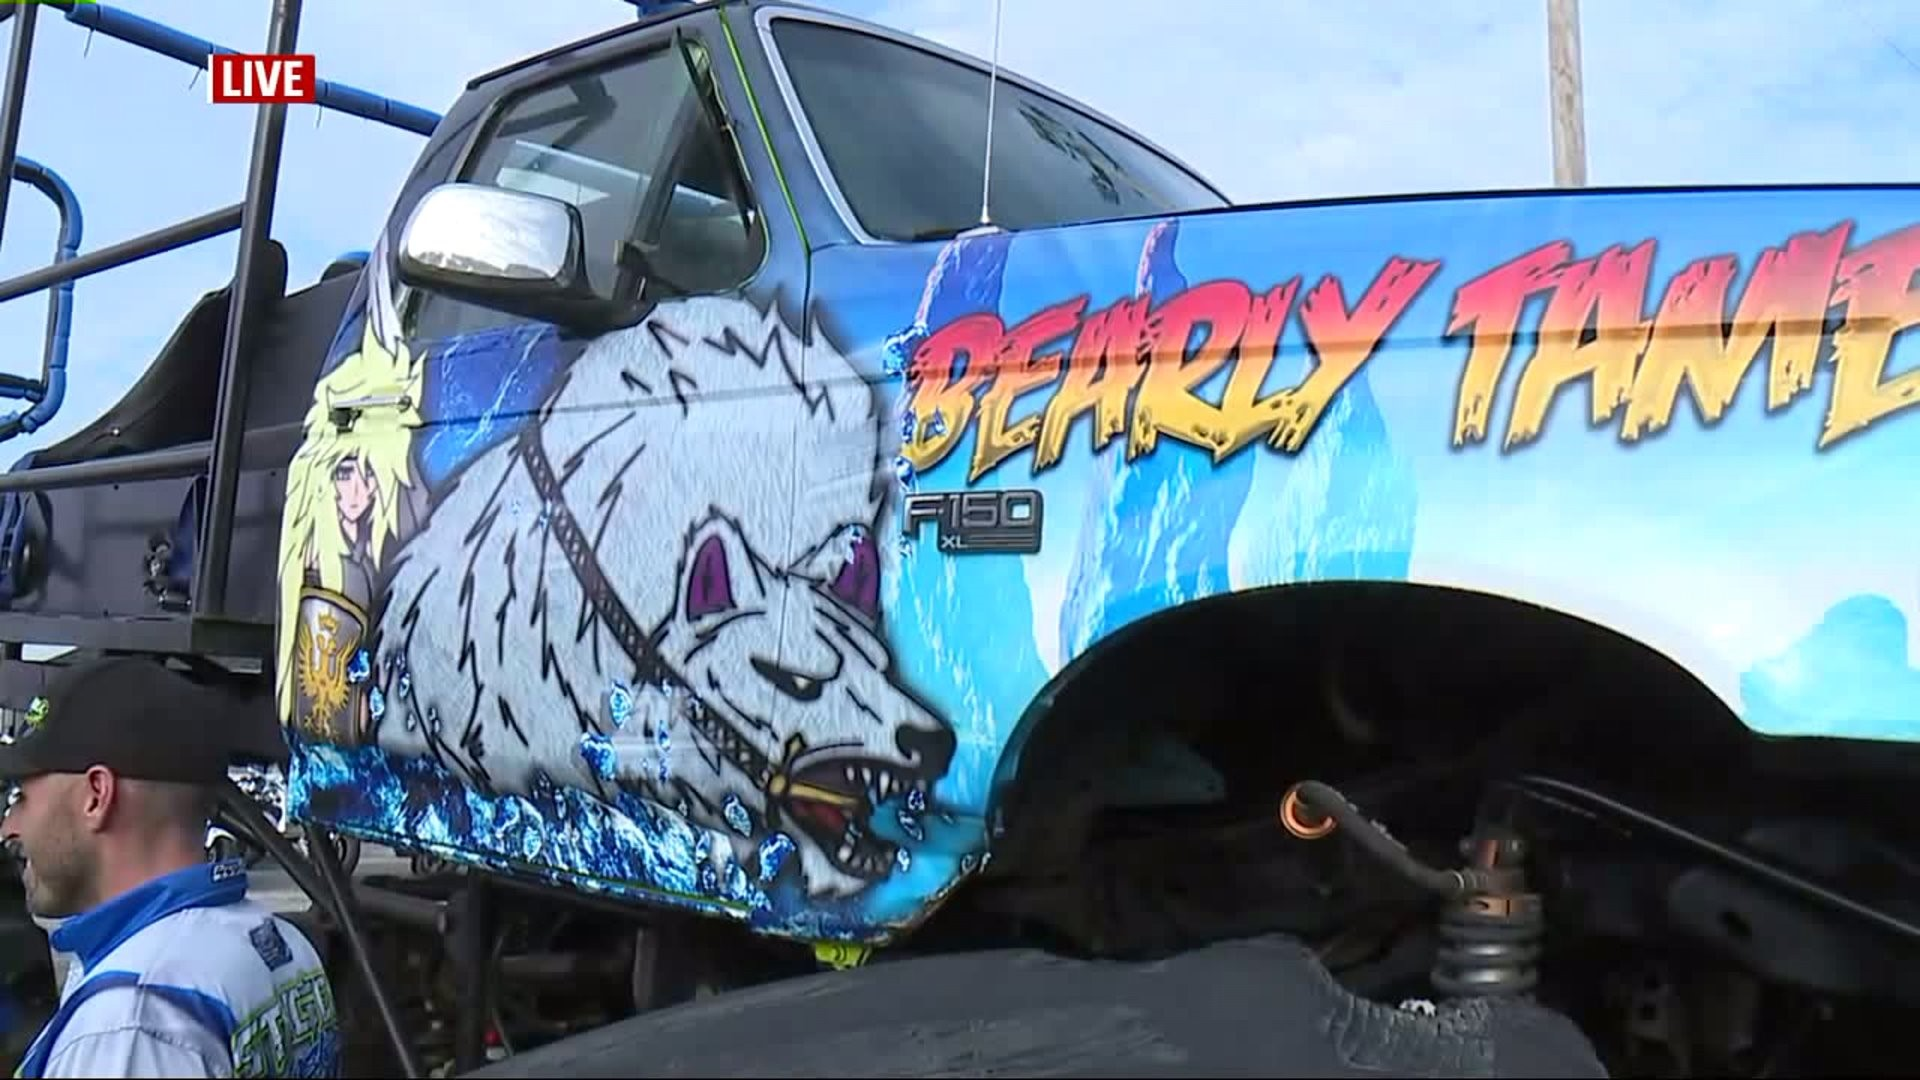 From Alligators To Monster Trucks The York Fair Has A Show For Everyone Fox43 Com